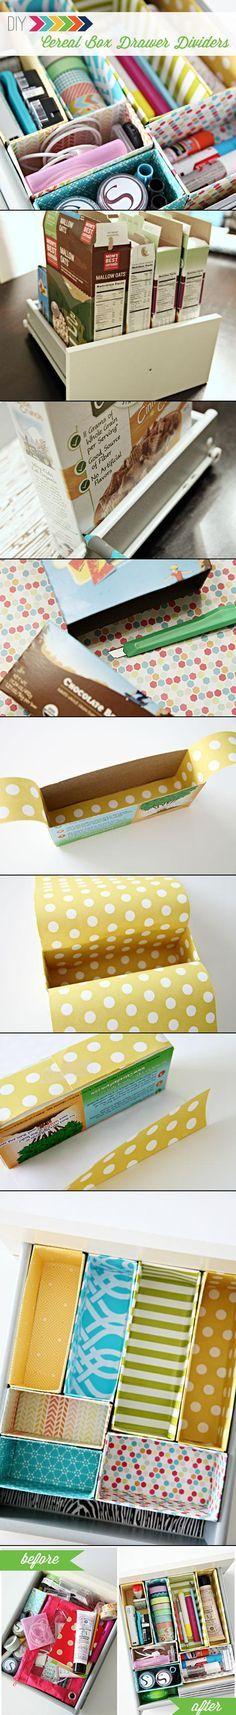 DIY Cereal Box Drawer Dividers, by I Heart Organizing. (LOVE this idea!):